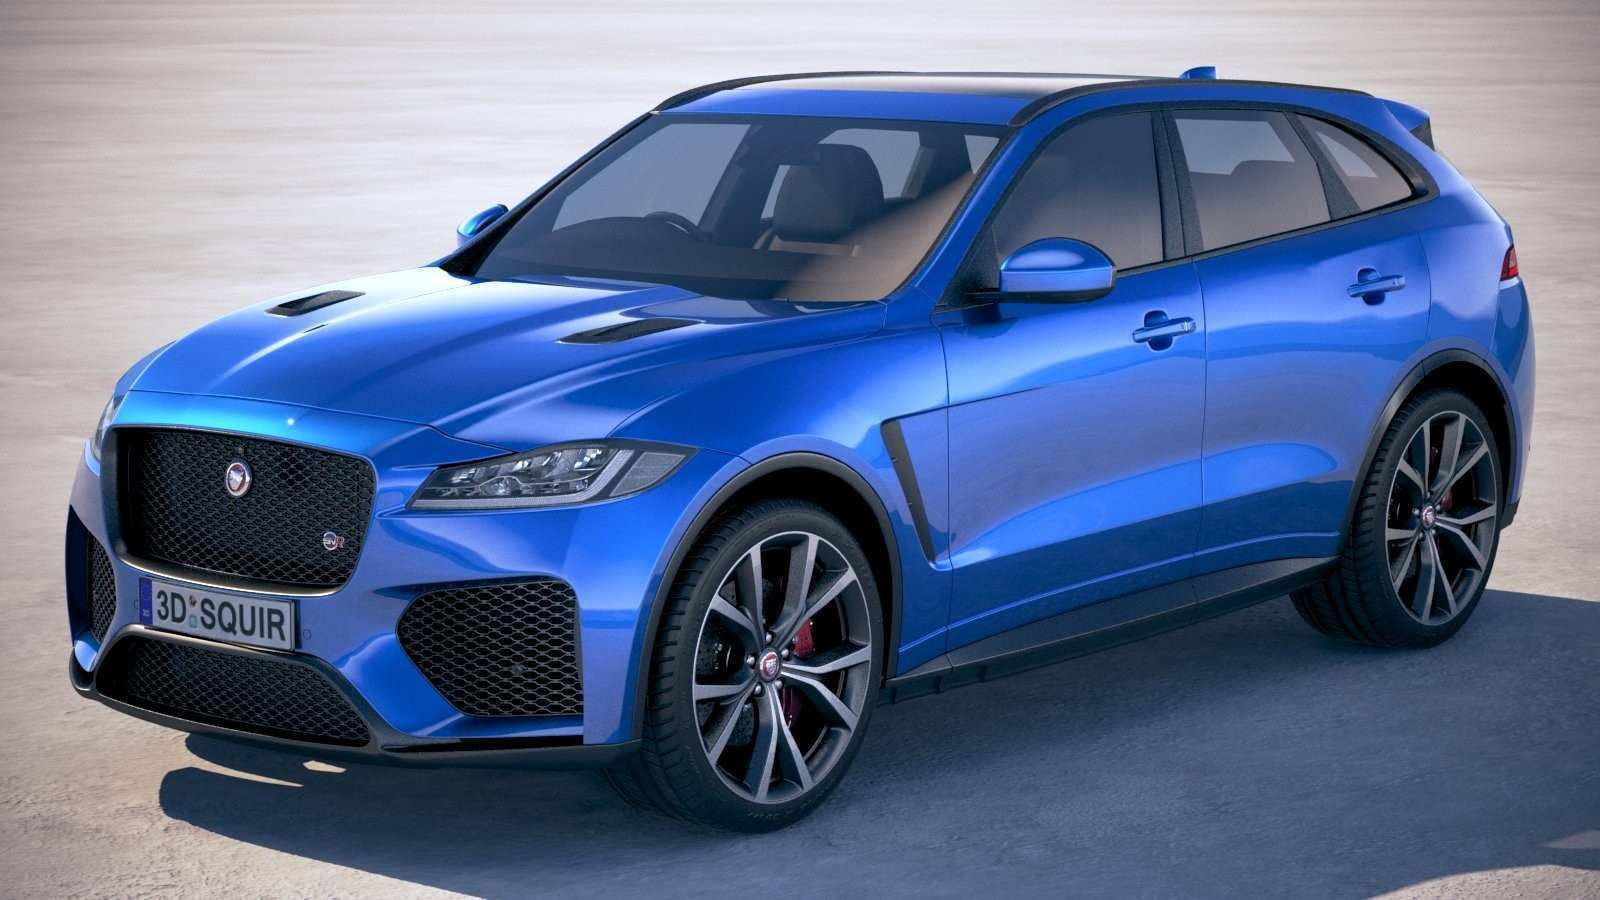 20 Best 2019 Jaguar F Pace Svr 2 Model